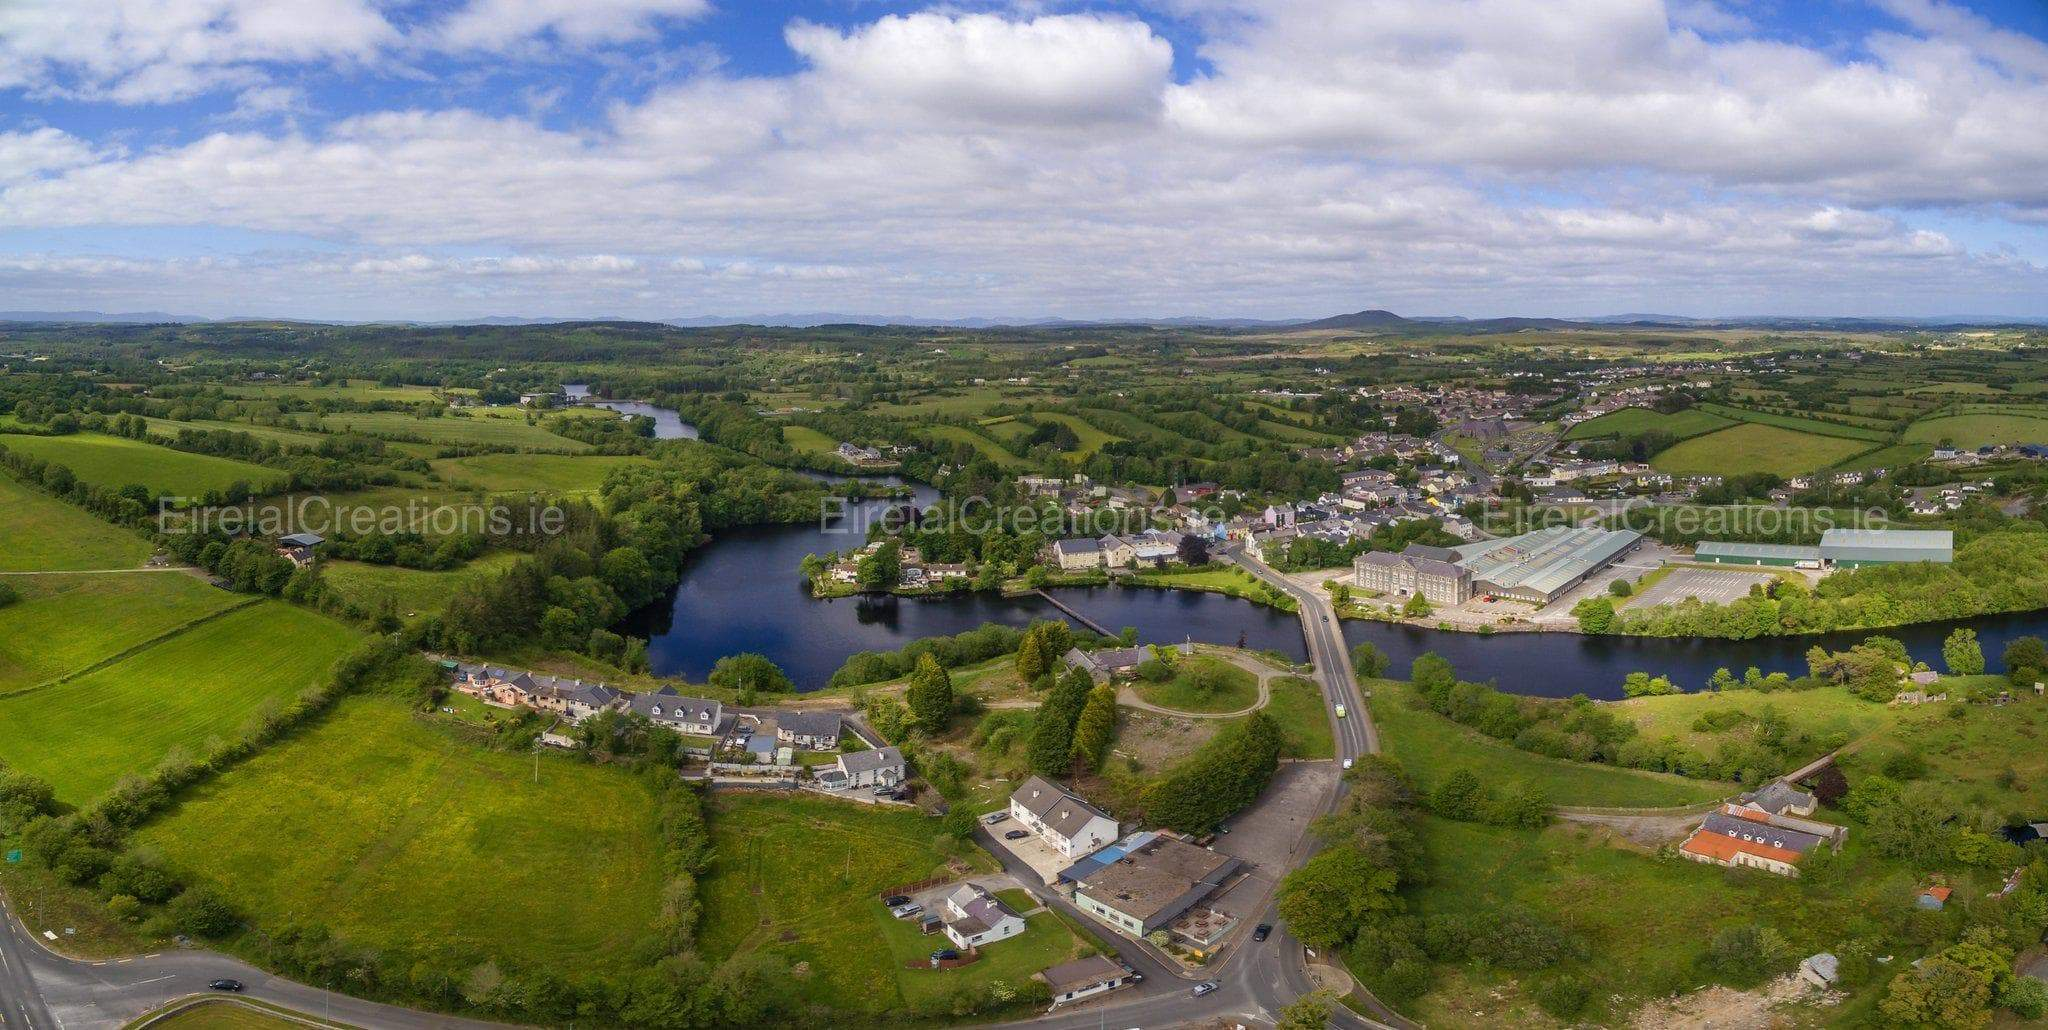 A Panoramic view of Inver, Donegal